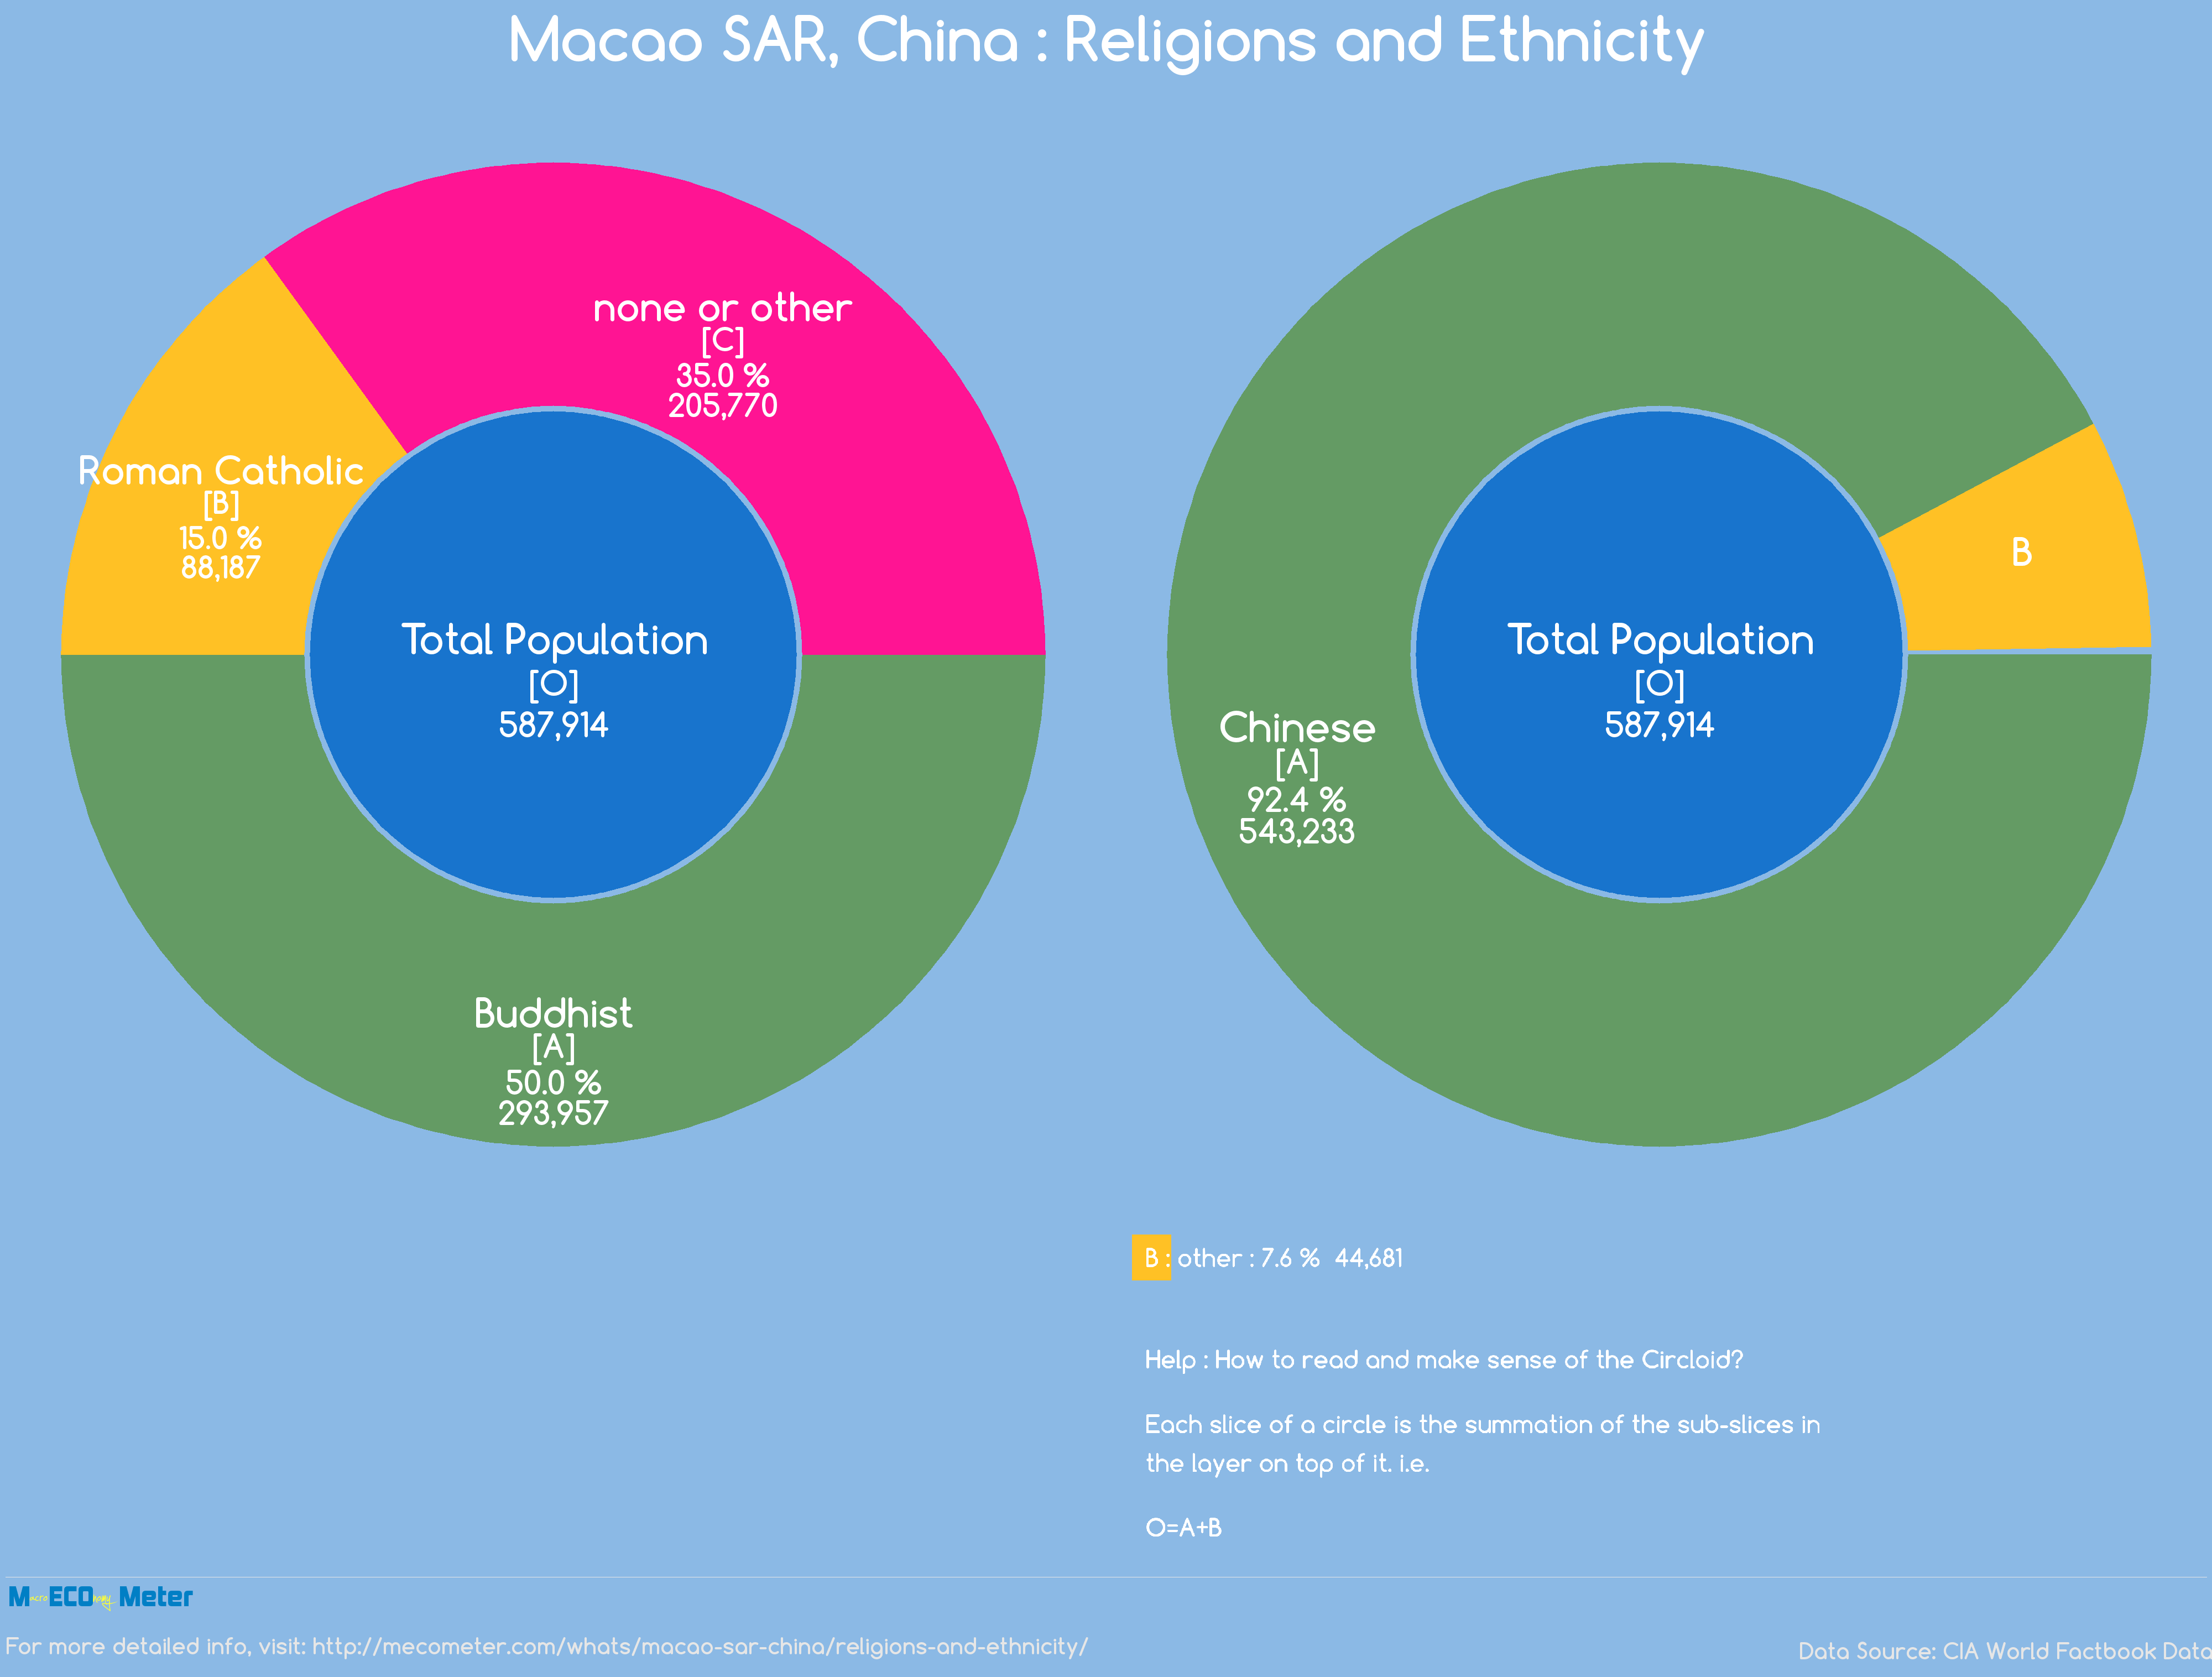 Macao SAR, China : Religions and Ethnicity